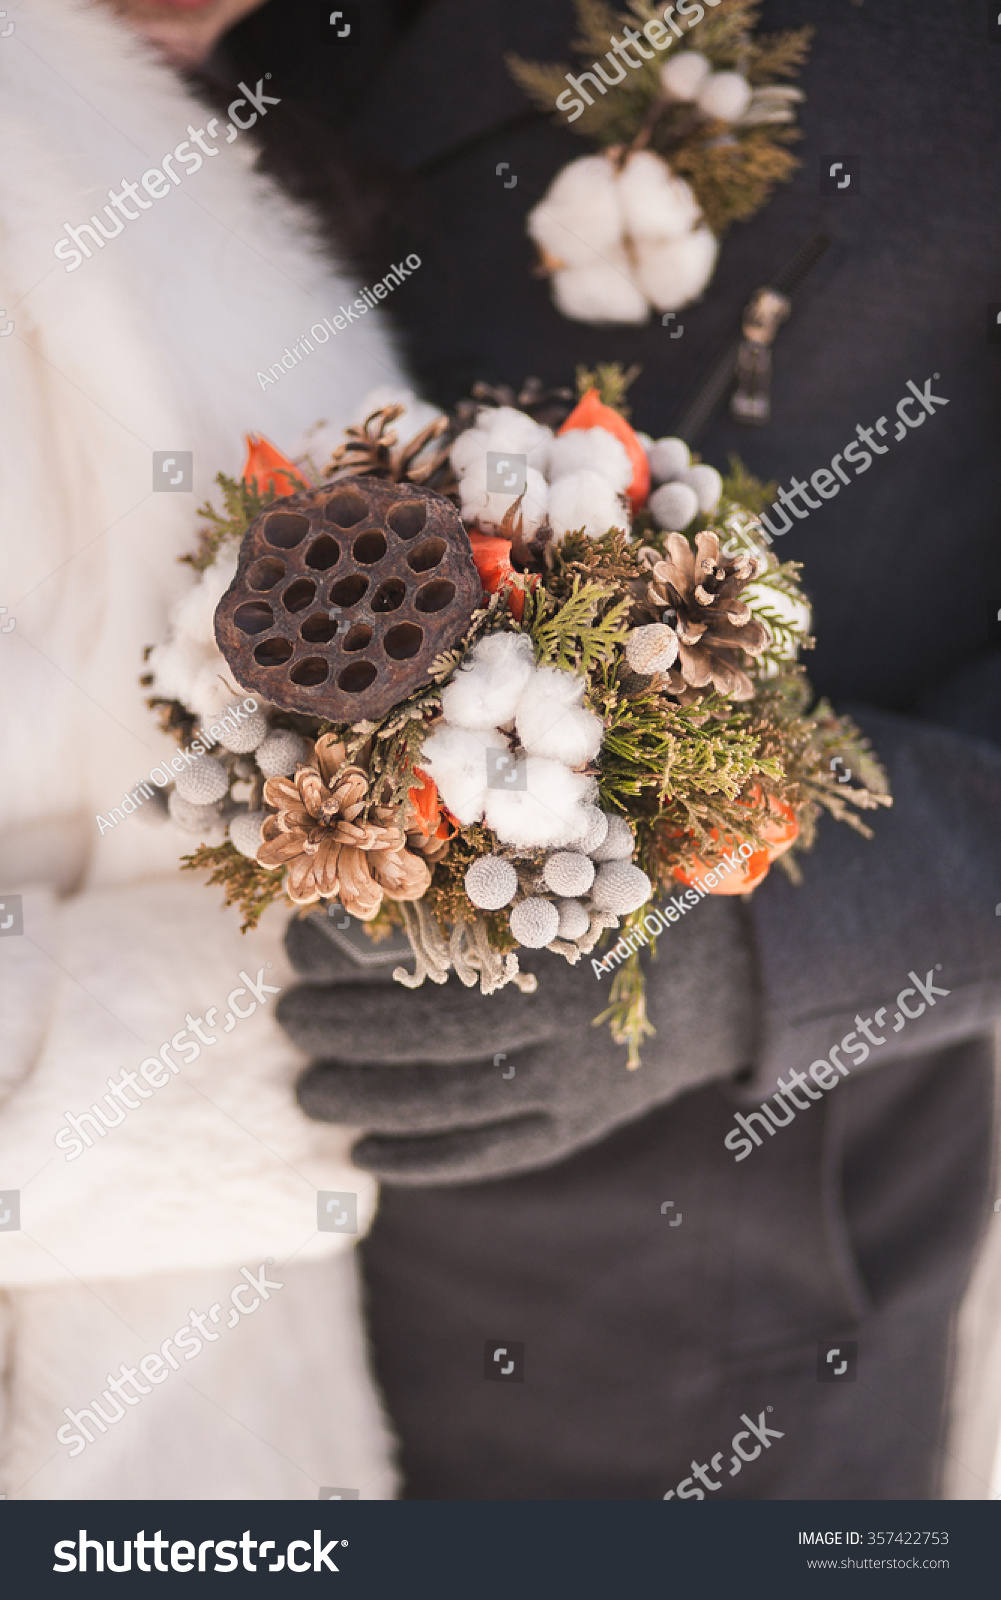 Beautiful Winter Bridal Wedding Bouquet In Hands Of Bride And Groom Made From Dried Lotus Flower